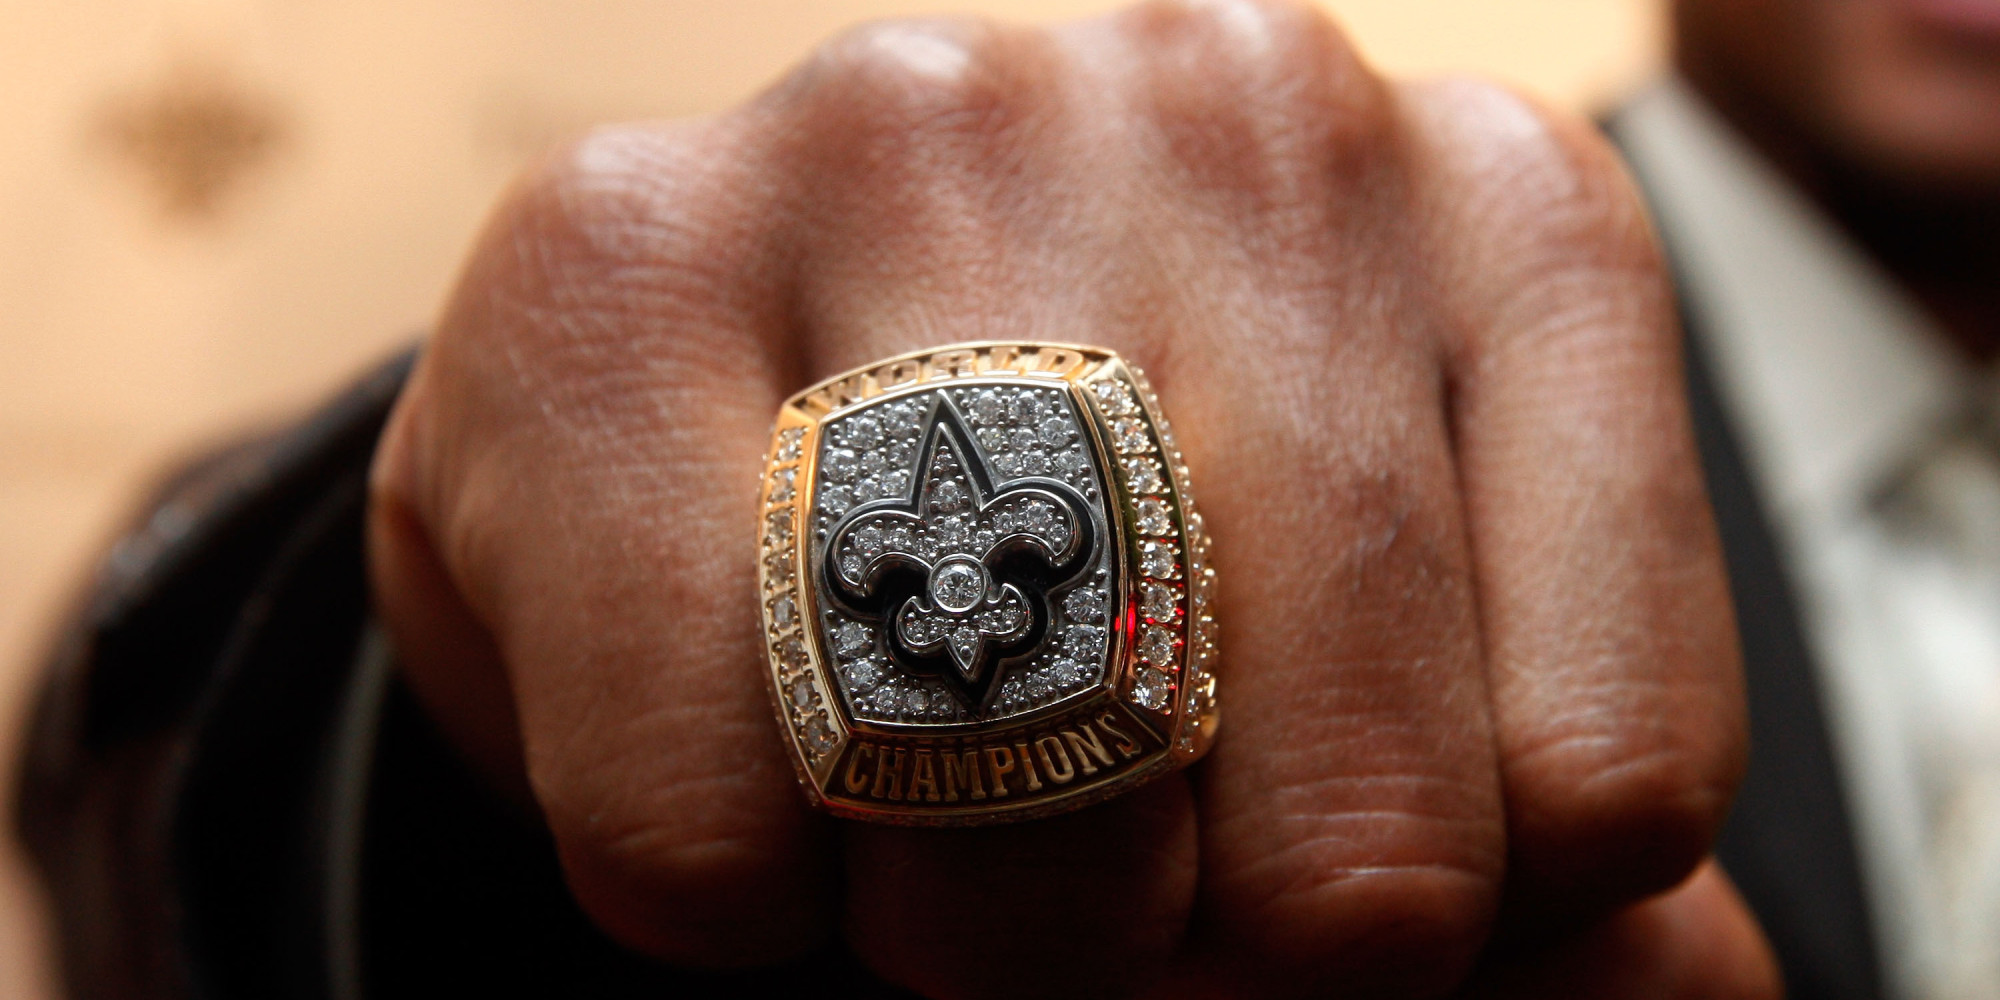 Here\'s How To Buy A Super Bowl Ring On Craigslist, According To An ...